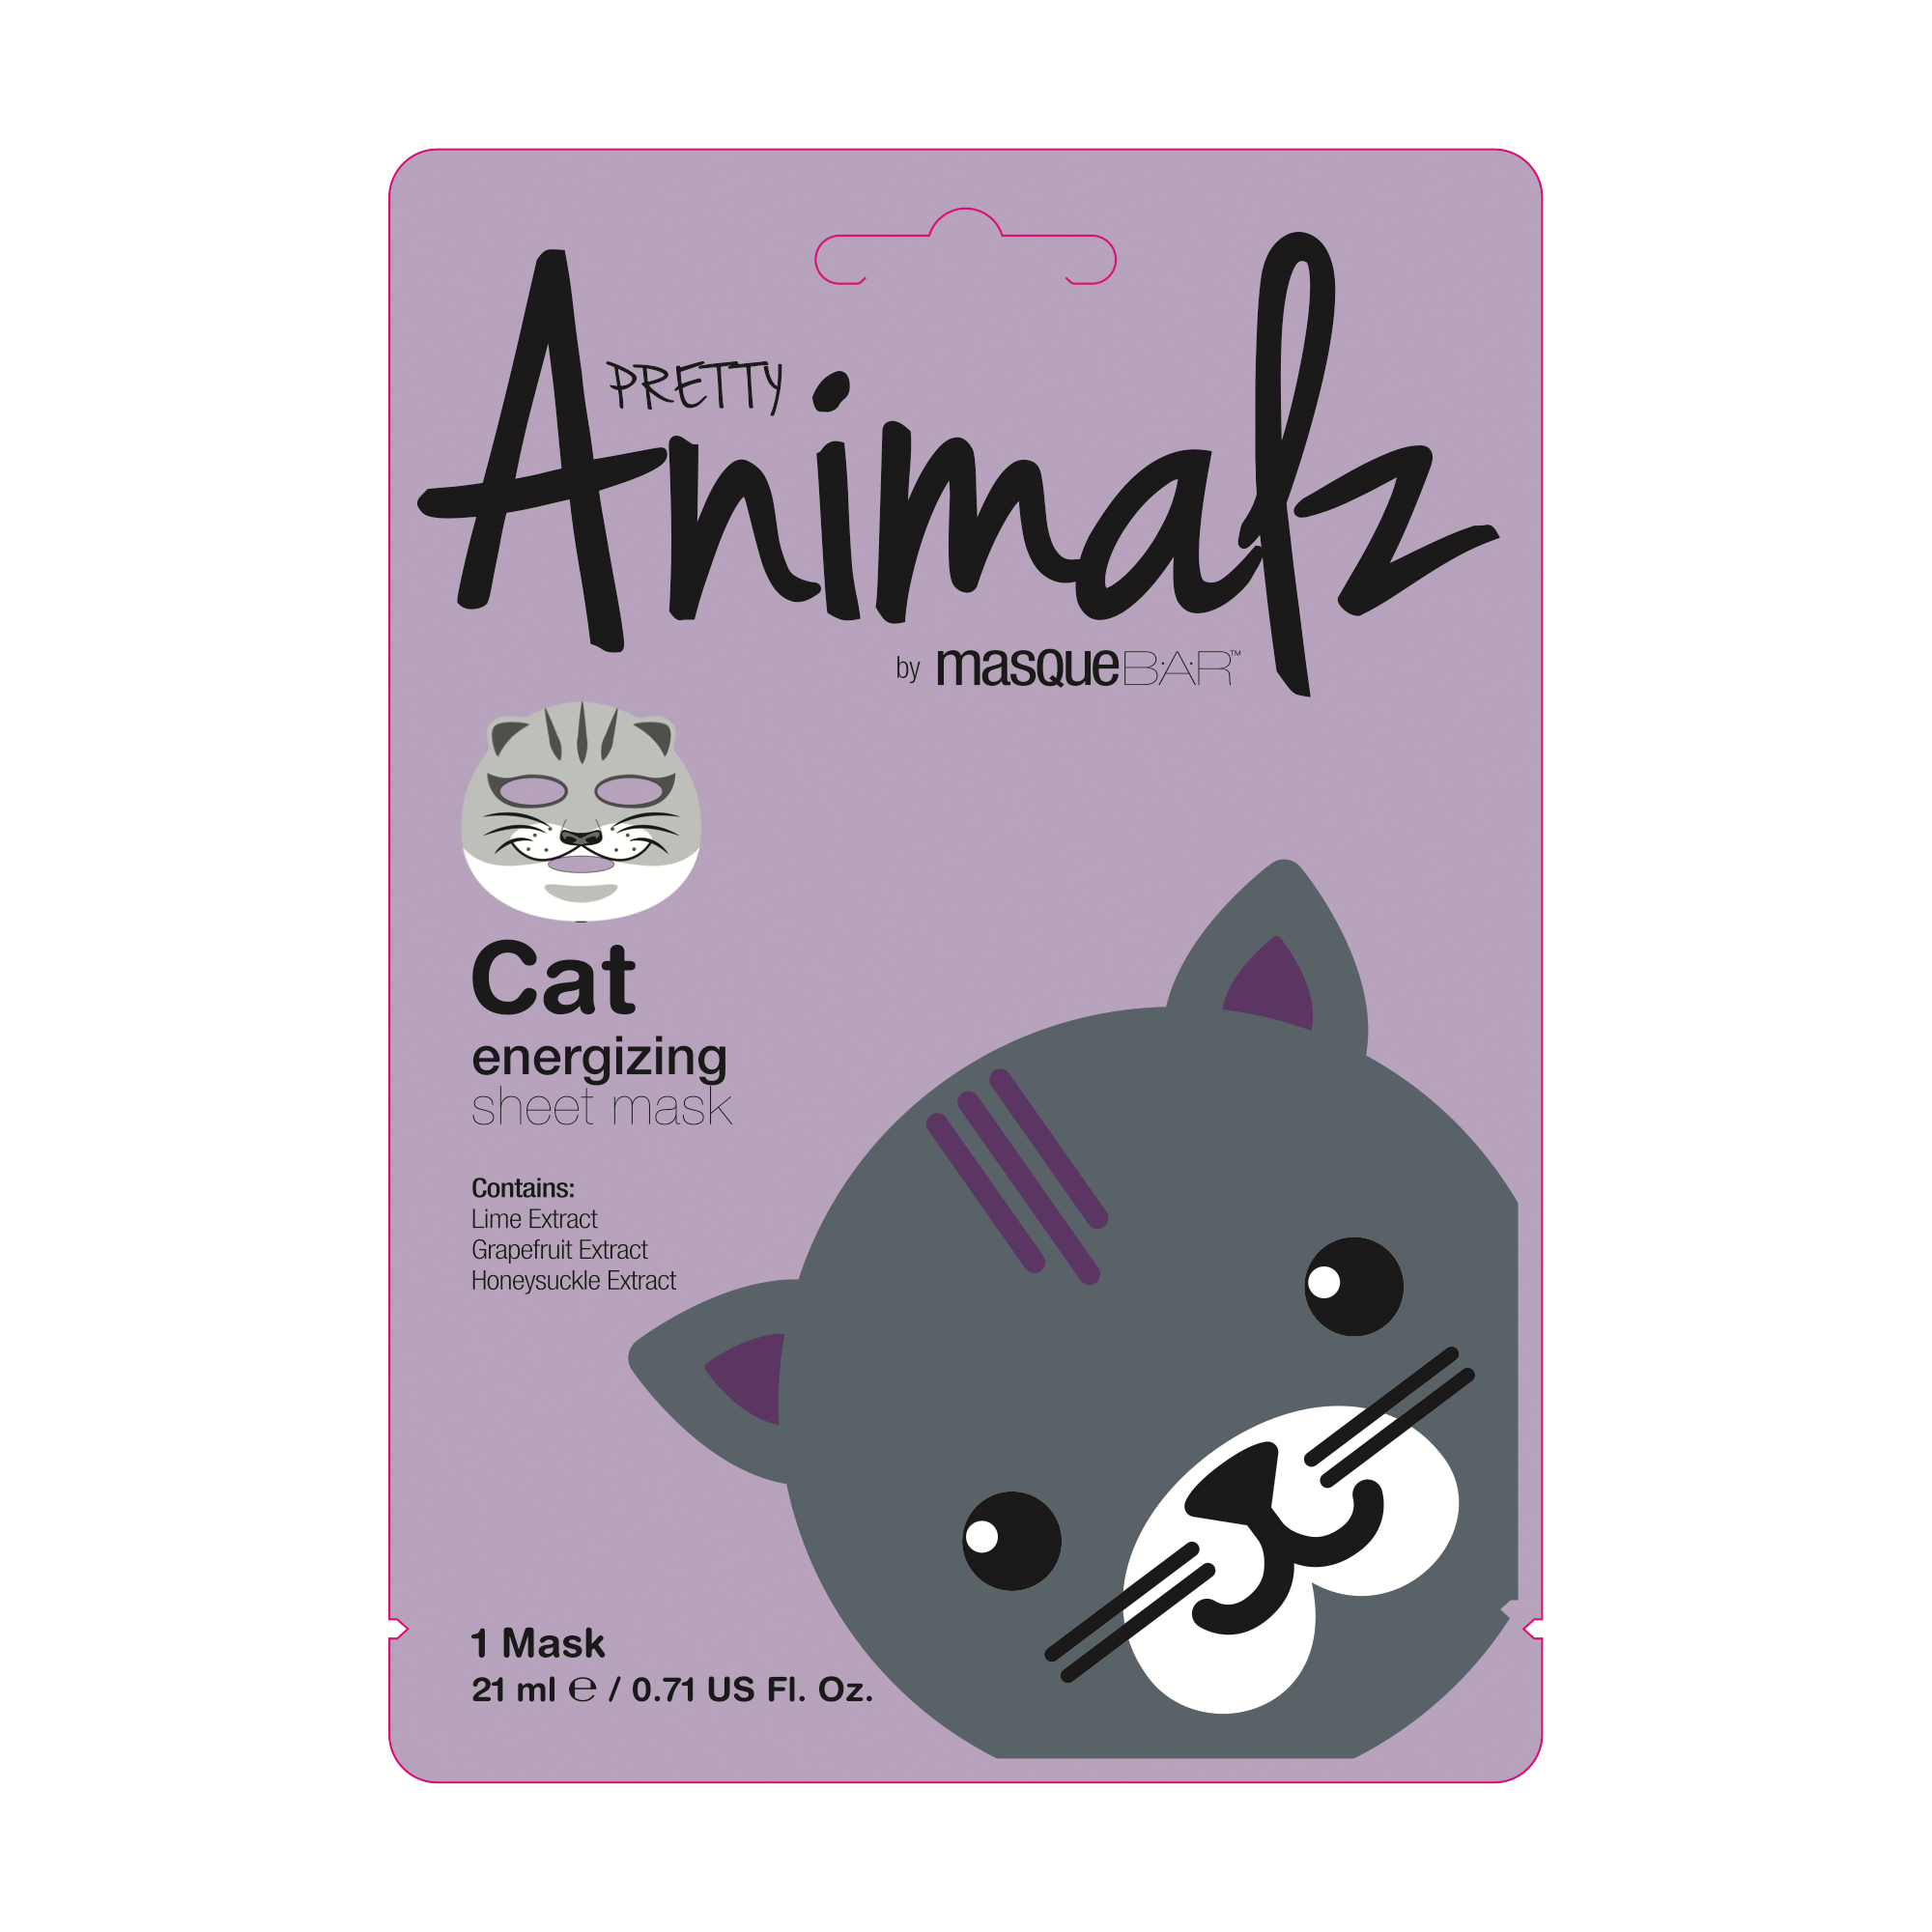 Animalz Cat Sheet Mask